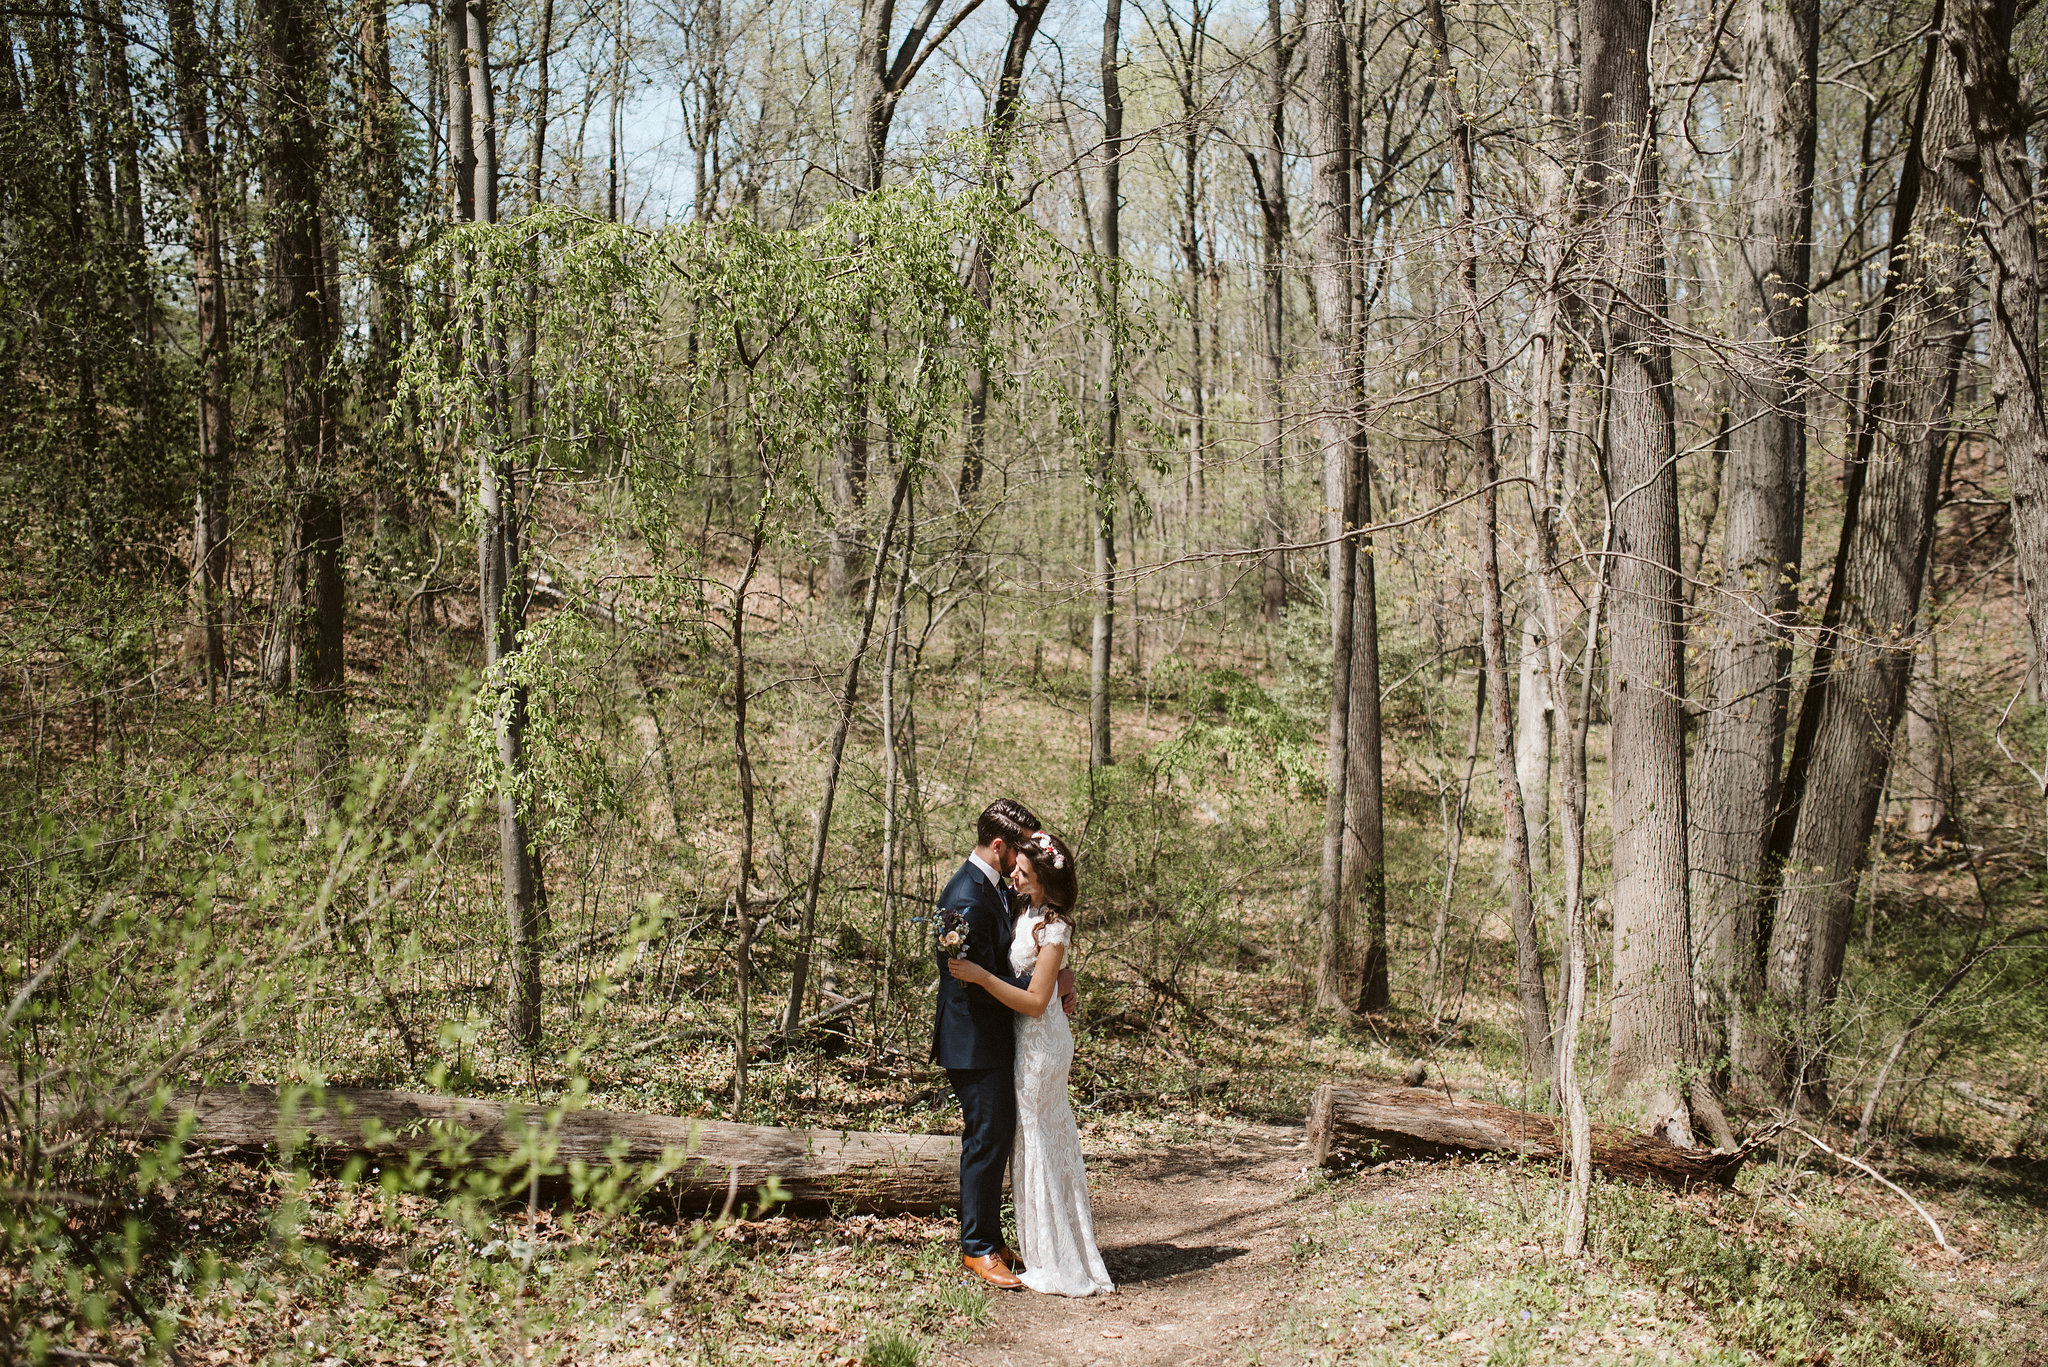 Spring Outdoor Wedding, Park, Baltimore Wedding Photographer, DIY, Classic, Upcycled, Garden Party, Romantic, Bride and Groom Holding Each Other in the Forest, Candid Photo